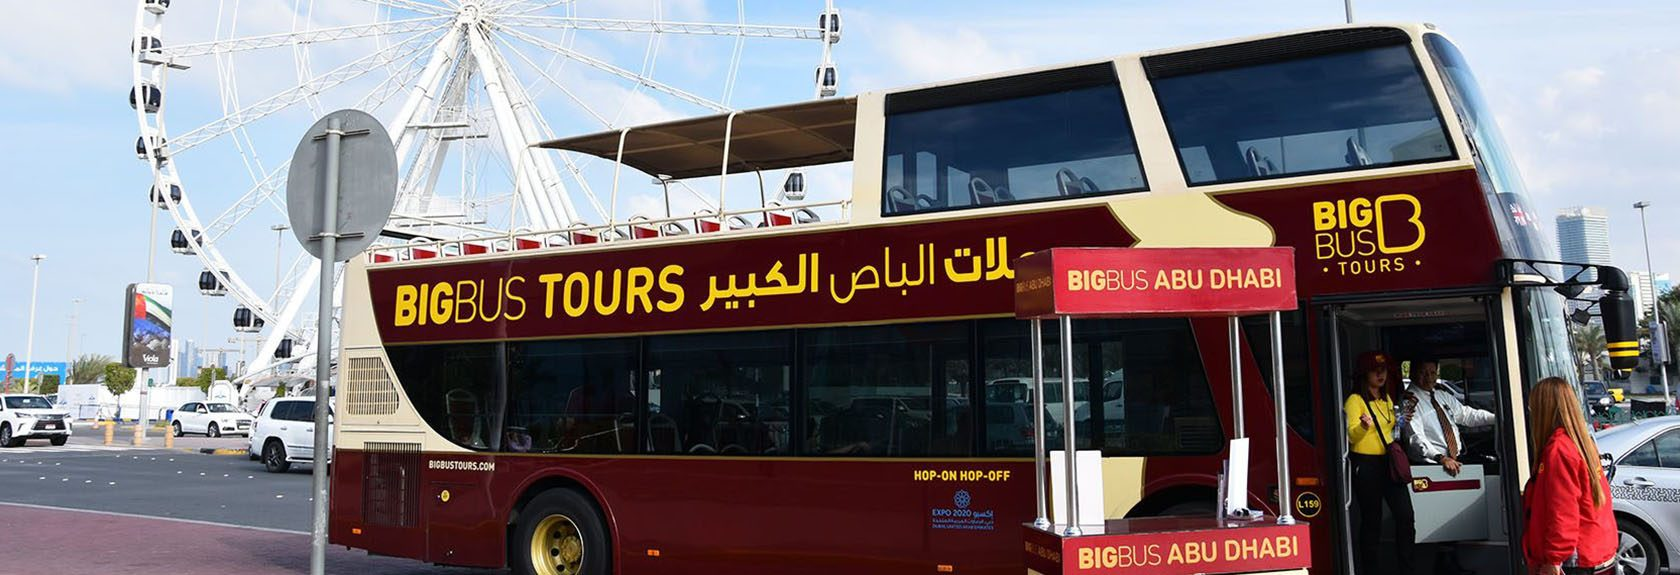 Abu Dhabi Big Bus Tours (Hop-on Hop-off Bus)